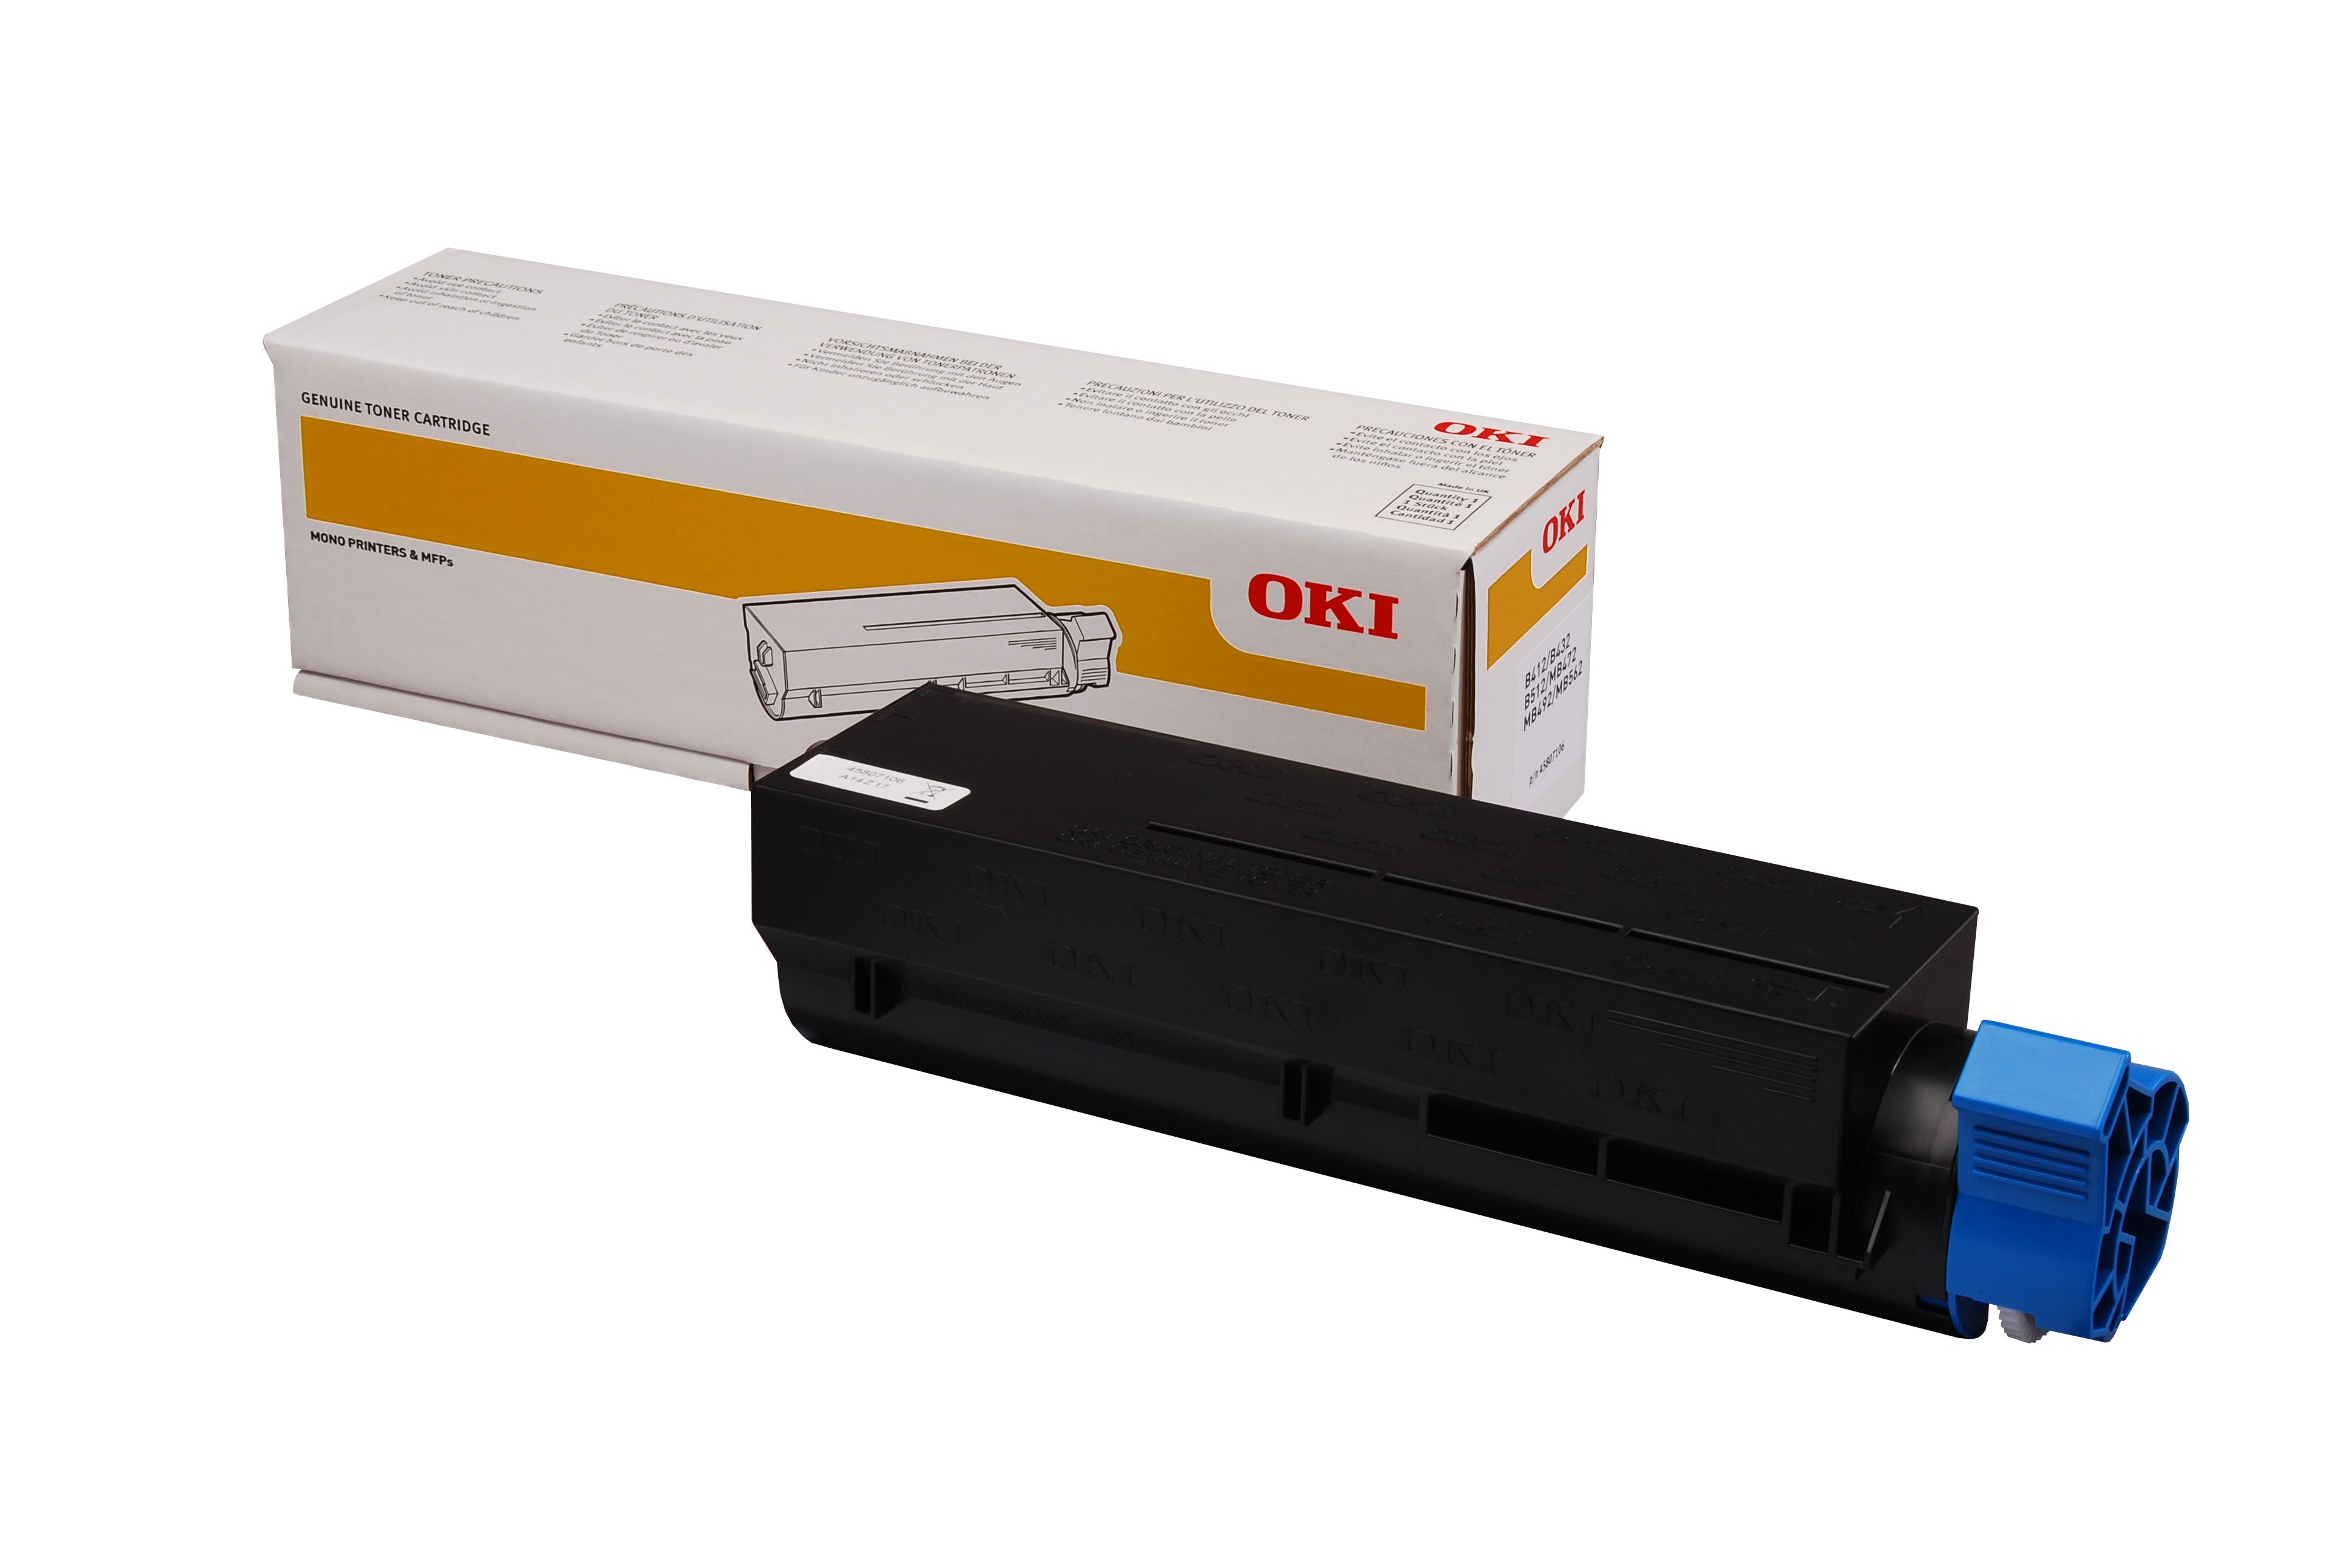 OKI MB562dnw Black Toner (7,000 Pages) 45807107